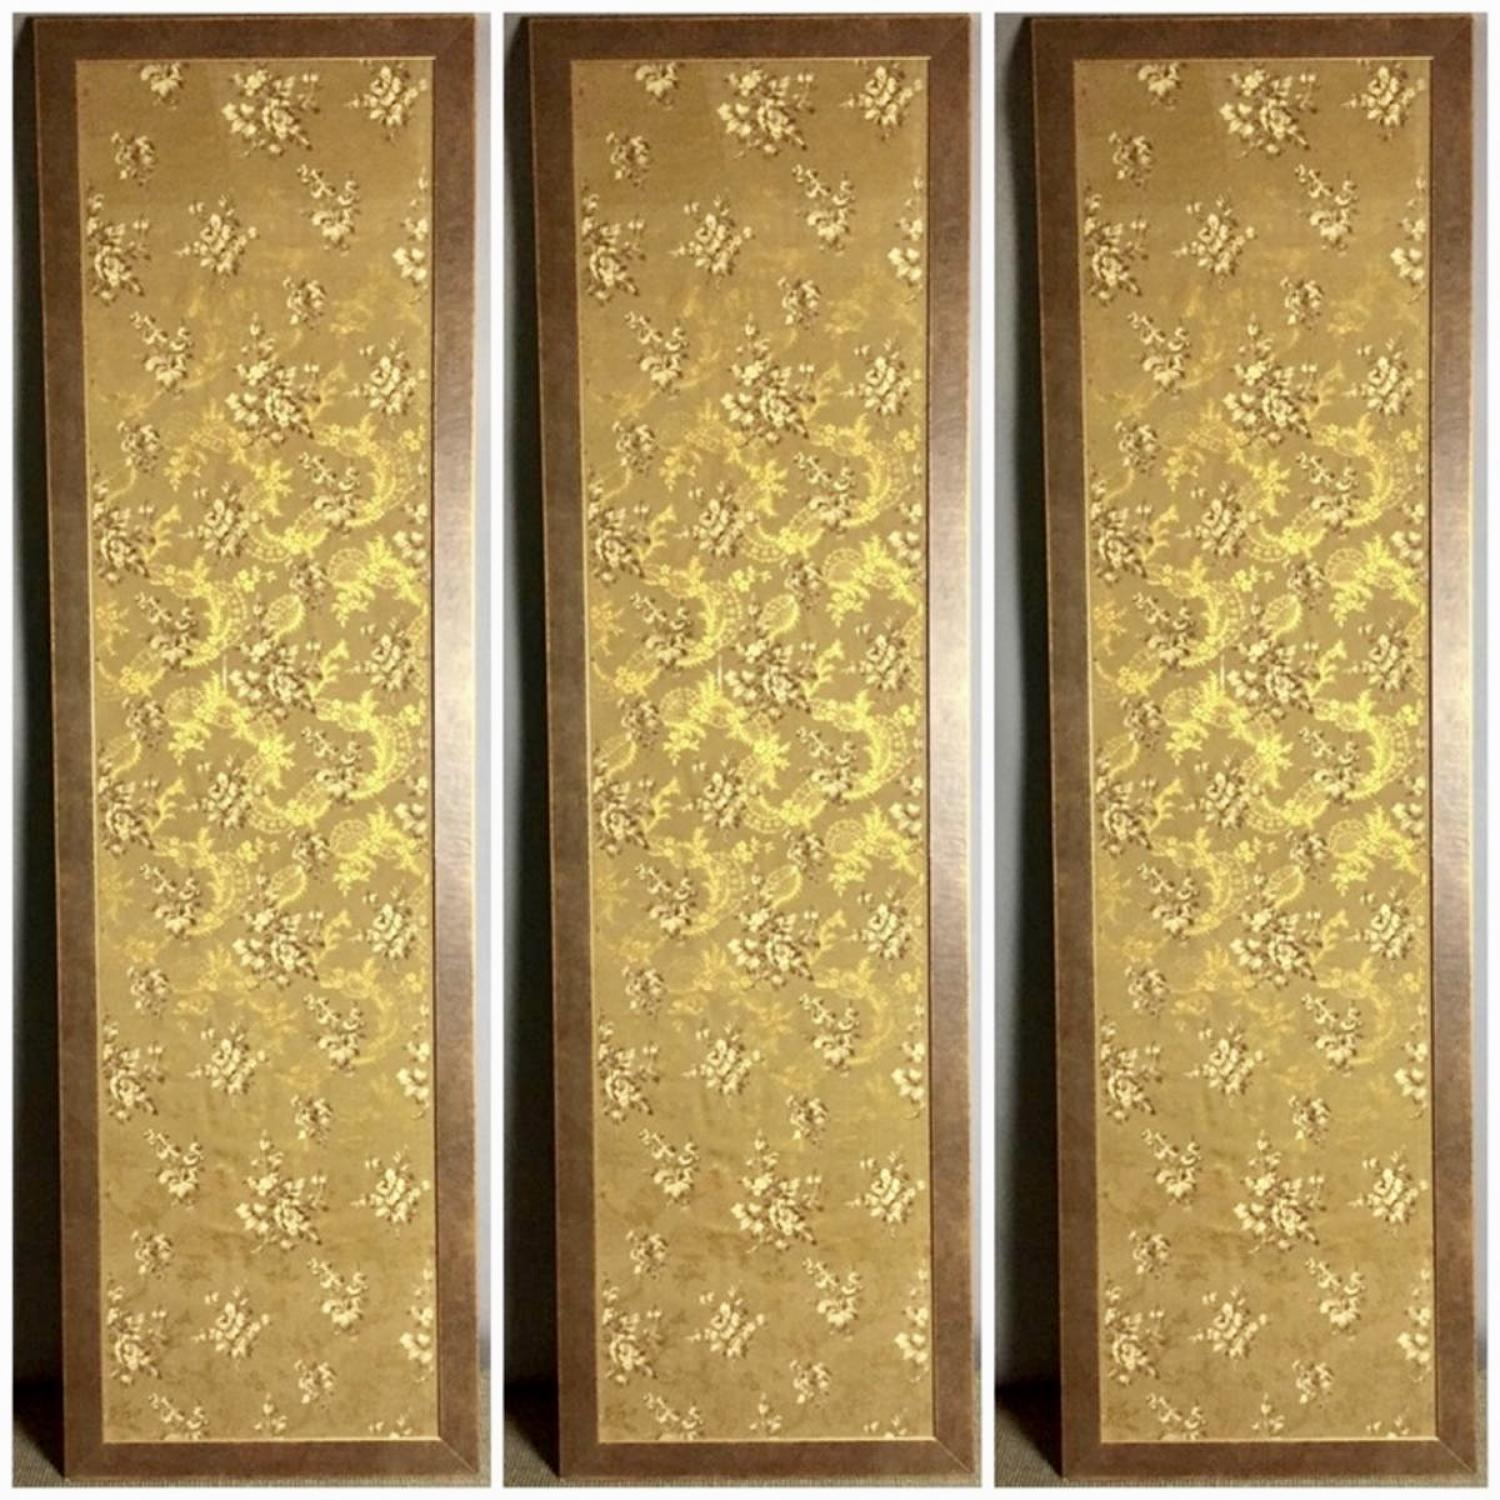 Three Large Framed Panels of Antique French Wallpaper